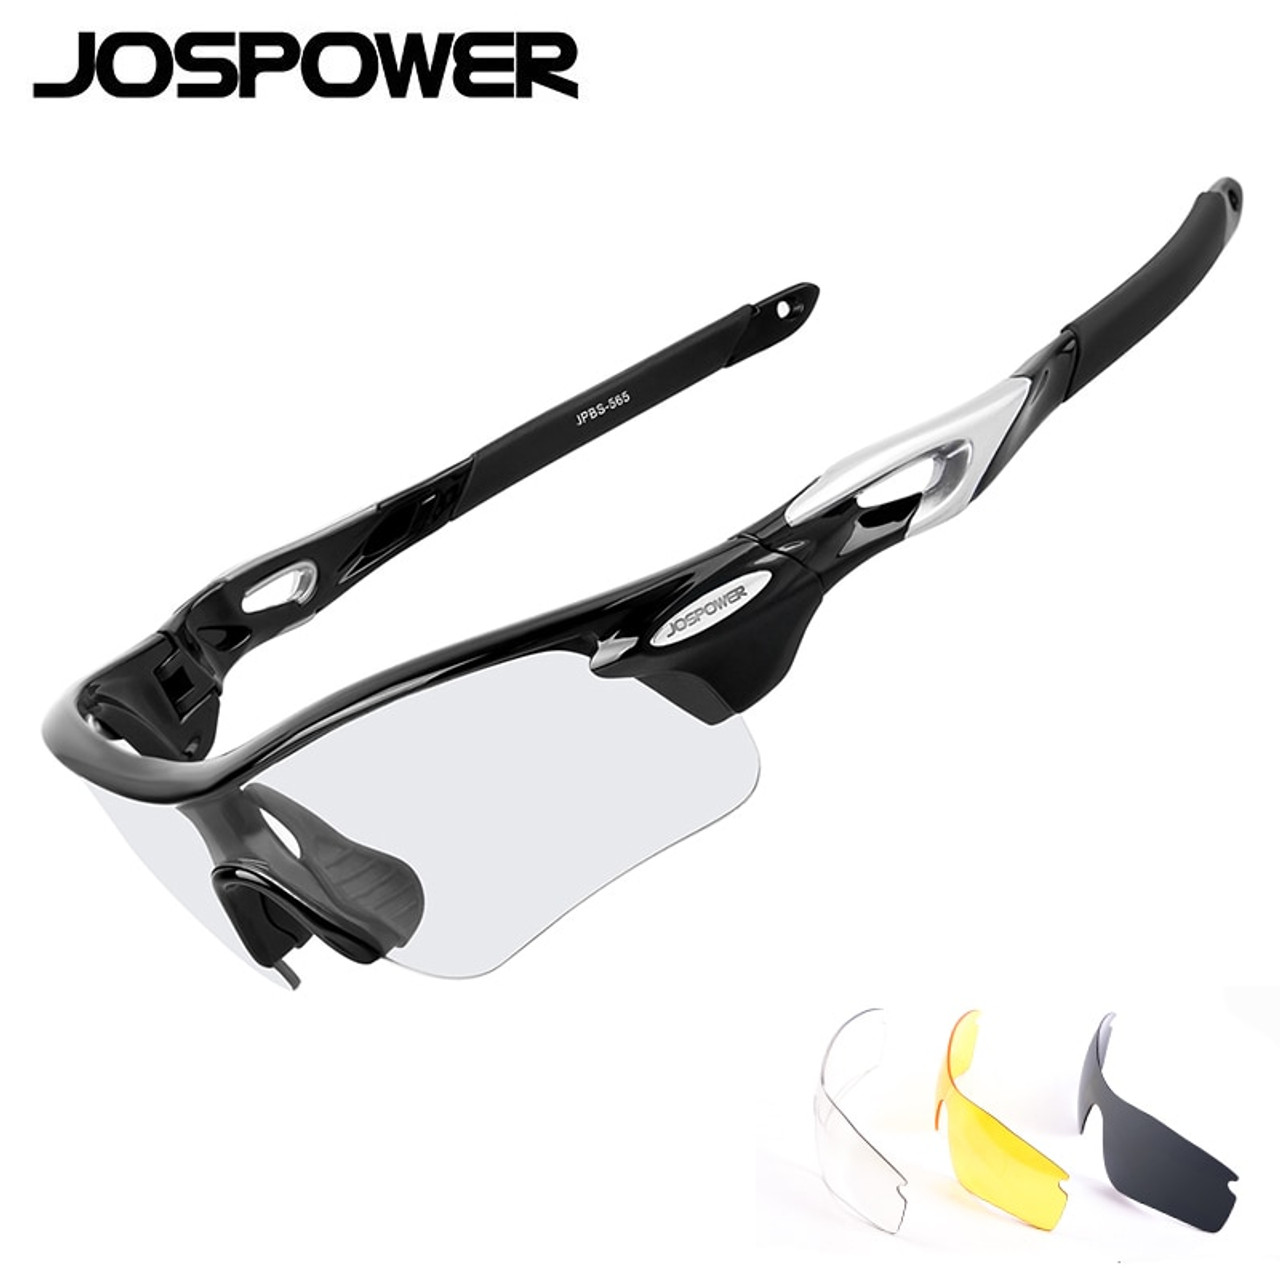 9047a06f51 JOSPOWER Photochromic Cycling Glasses Polarized UV400 Sunglasses MTB Road Bike  Eyewear Glasses Goggles occhiali ciclismo 3 Lens - OnshopDeals.Com